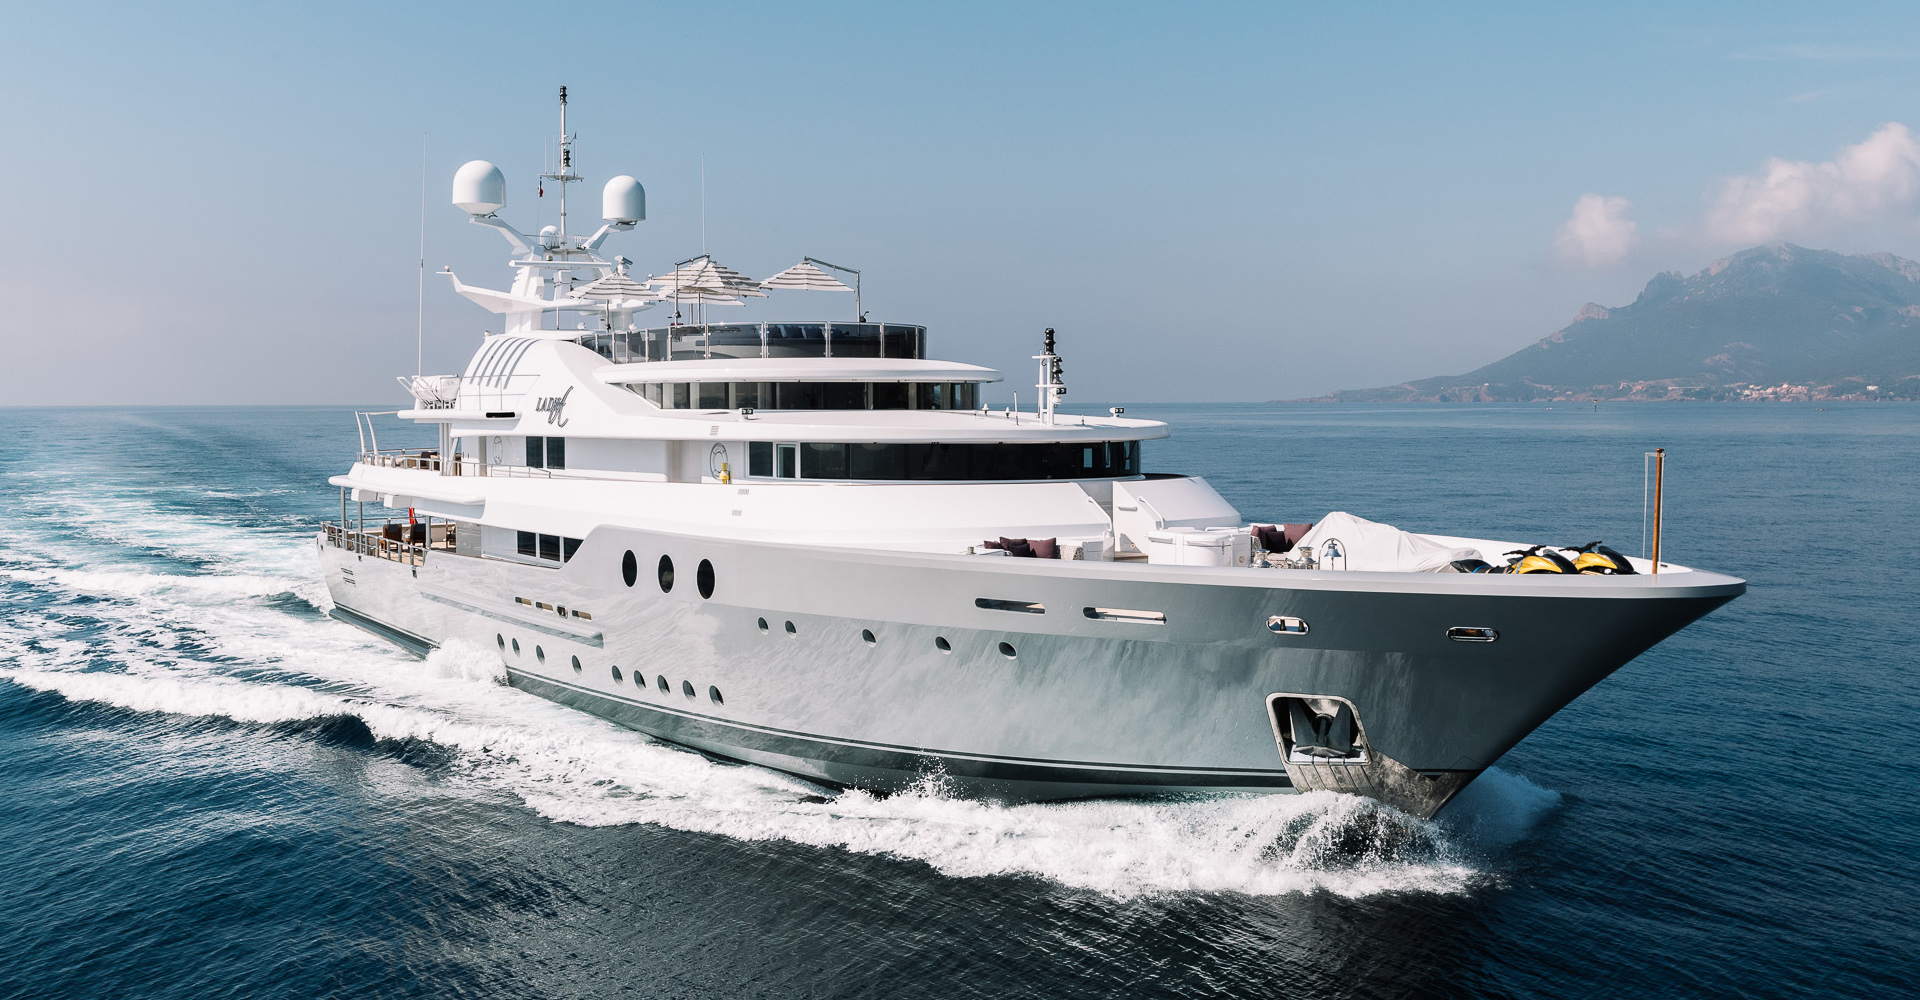 Exterior photo of motor yacht Lady A. The yacht is owned by Alan Suagr.